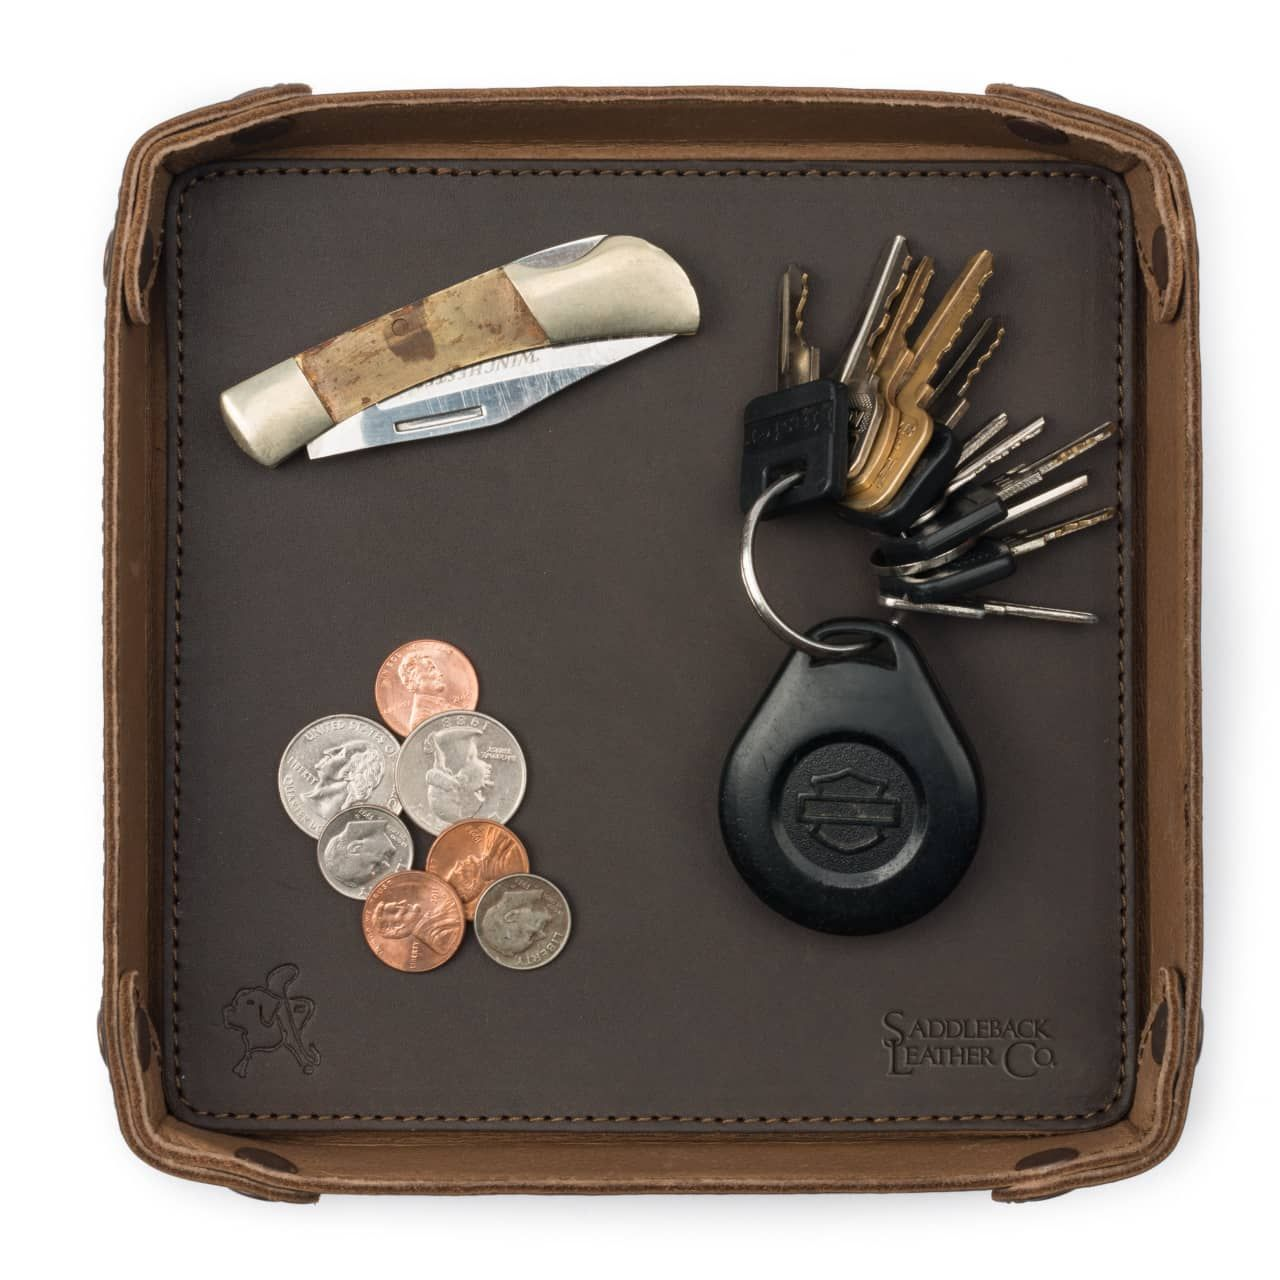 Keys, money and something located on the leather valet tray in dark coffee brown leather